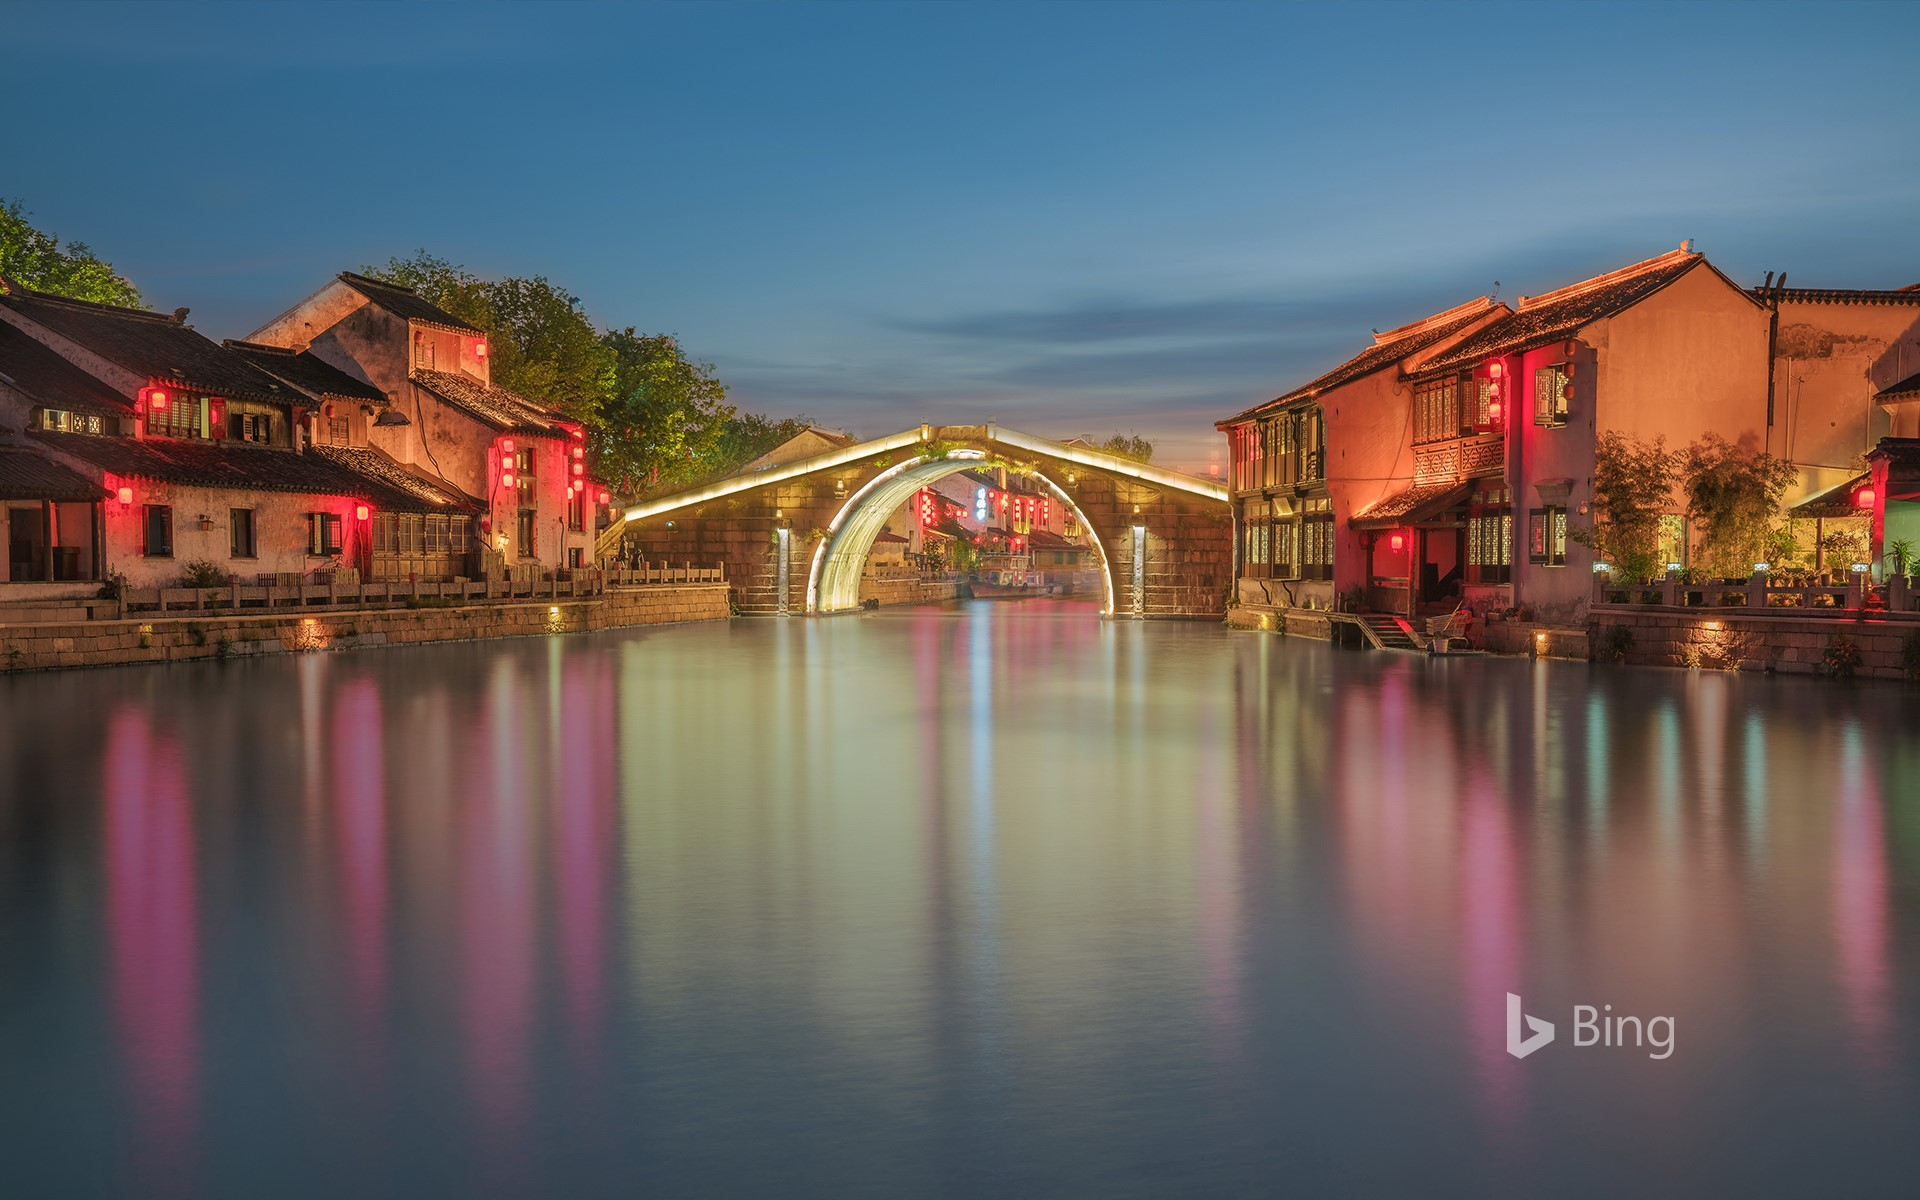 Qingming Bridge in Wuxi, China (© Hanyu Qiu/Shutterstock)